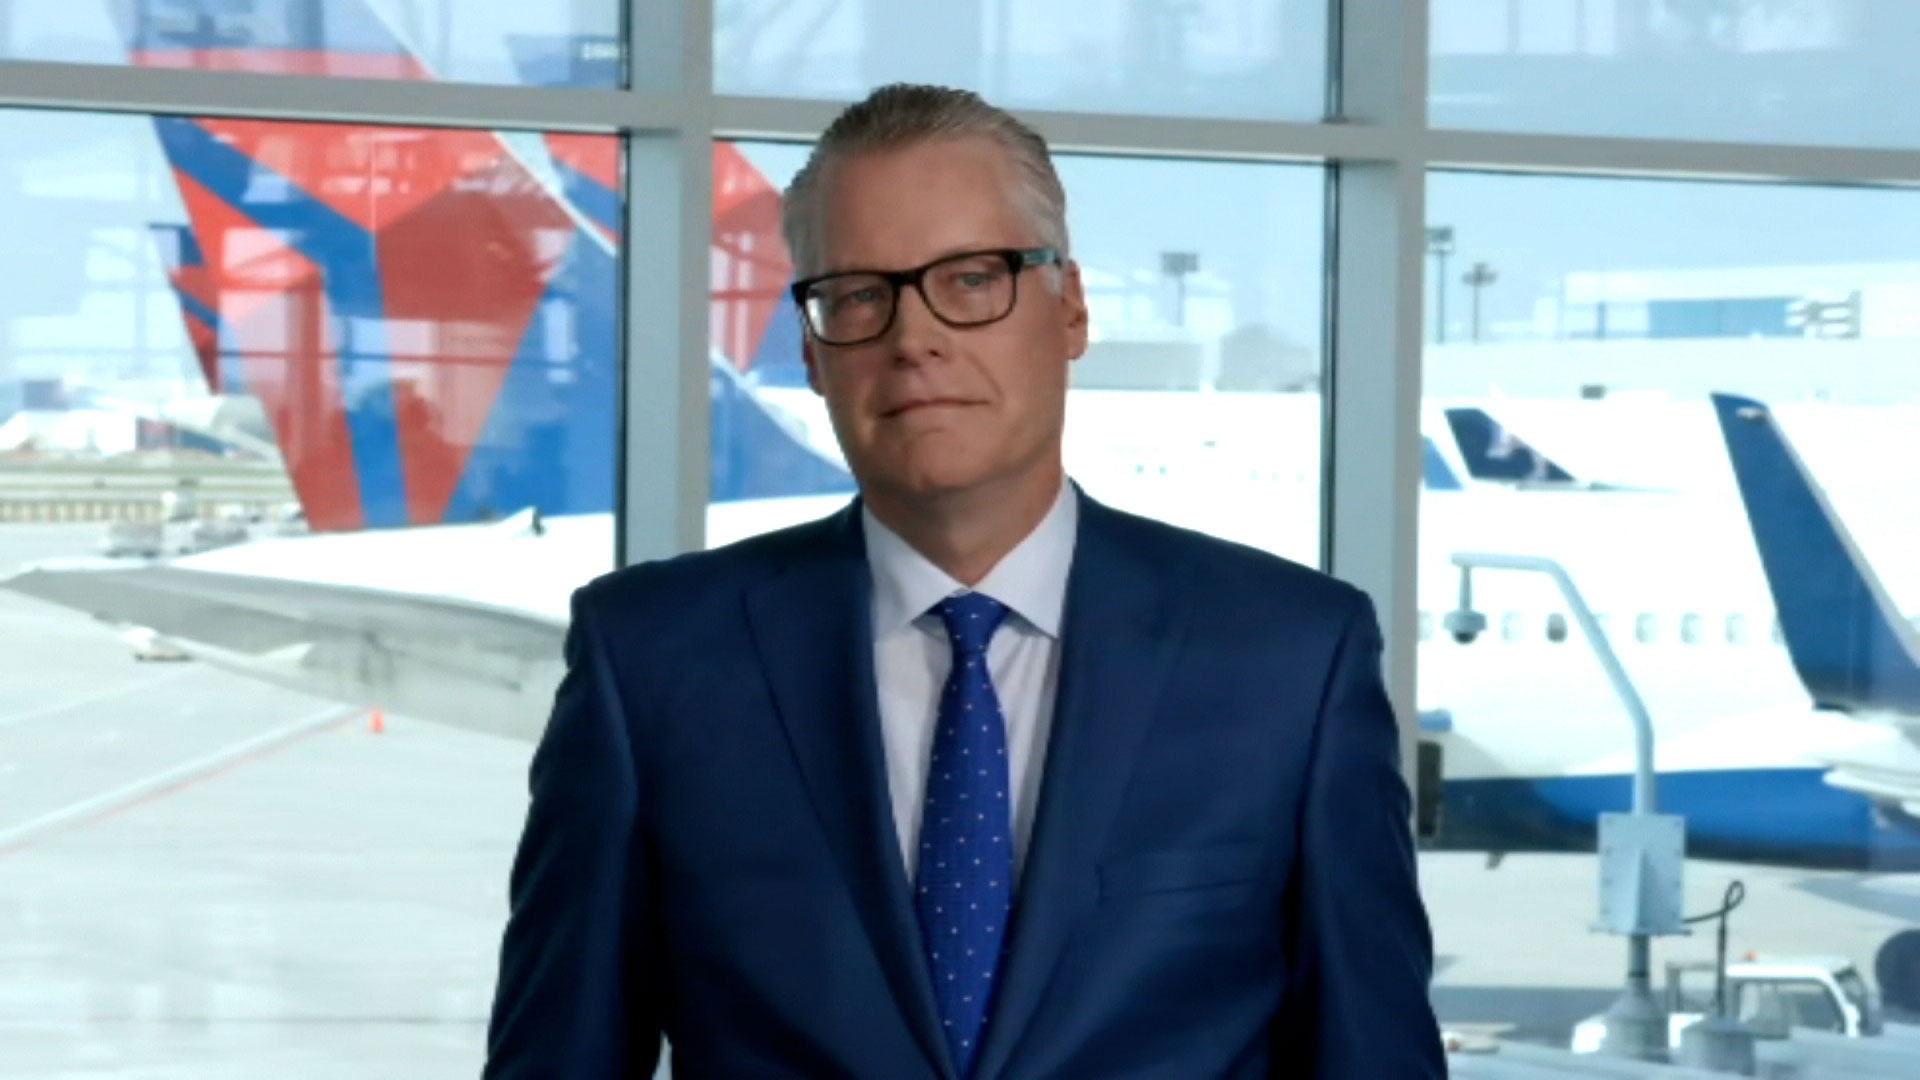 CEO of Delta Air Lines Ed Bastian on May 27.